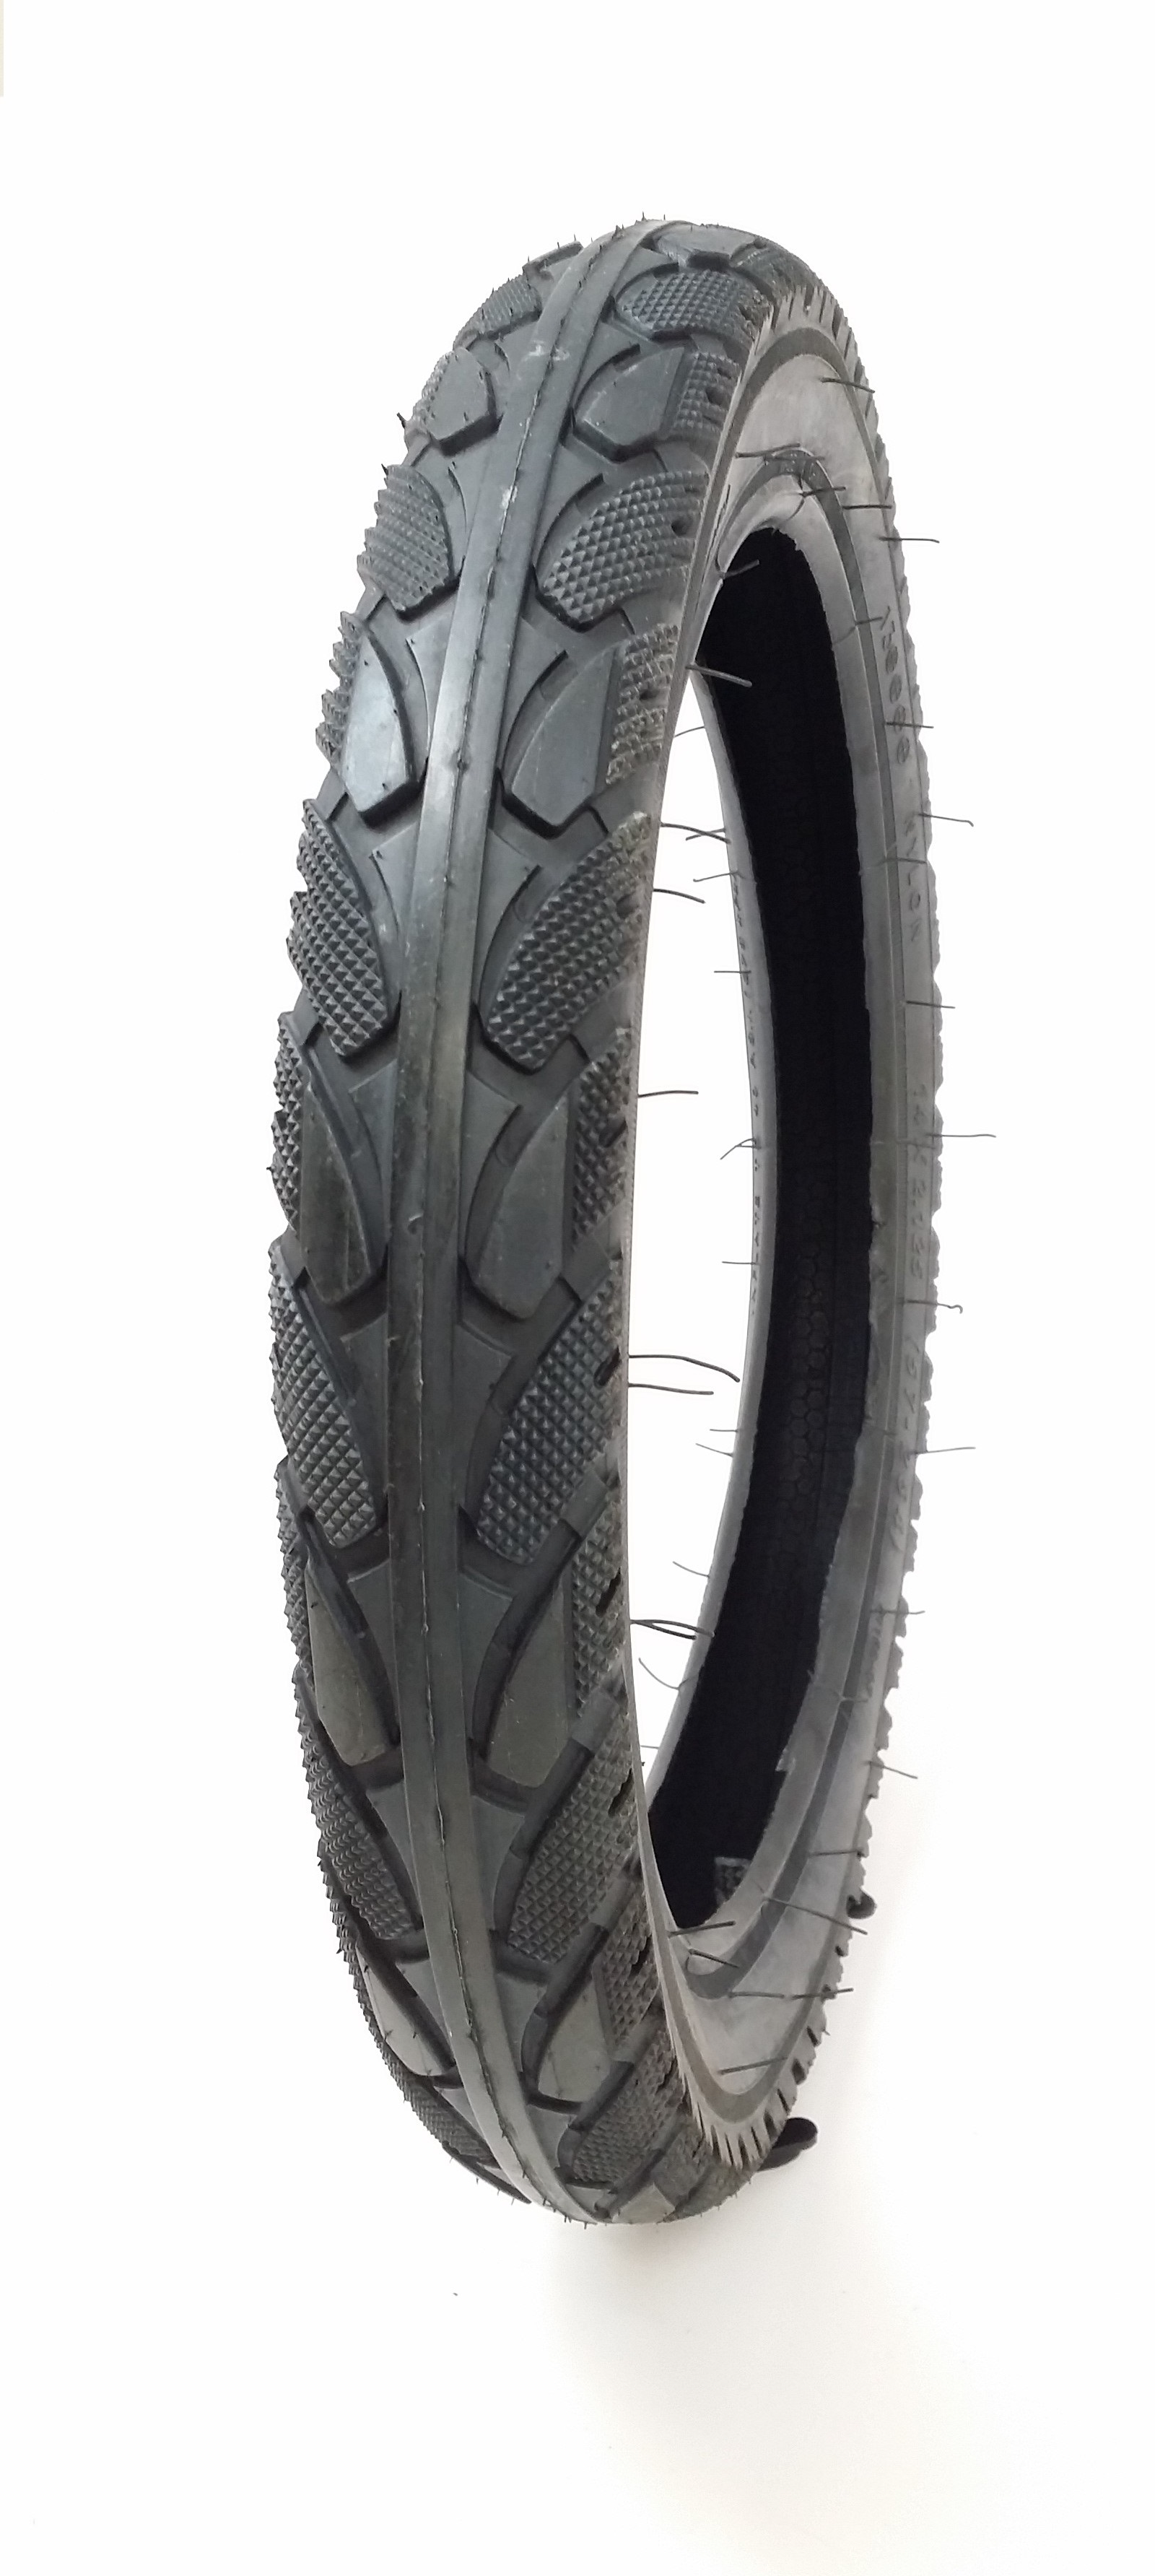 14 Inch Tires >> Details About Black 14 X 2 125 Bmx Bike Bicycle Tire 14 Inch New